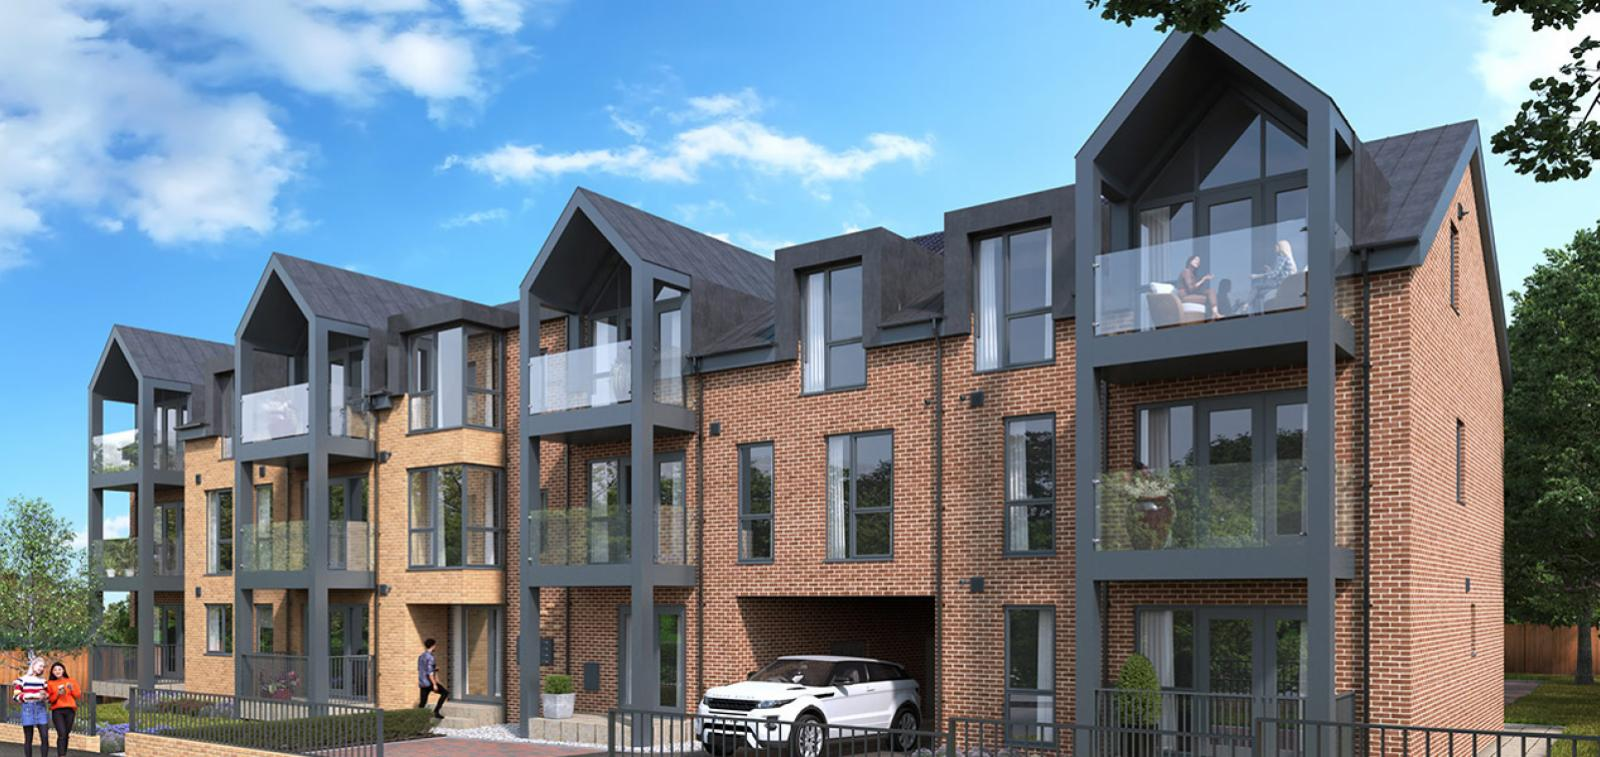 CGI showing The Westcliffs development in Essex